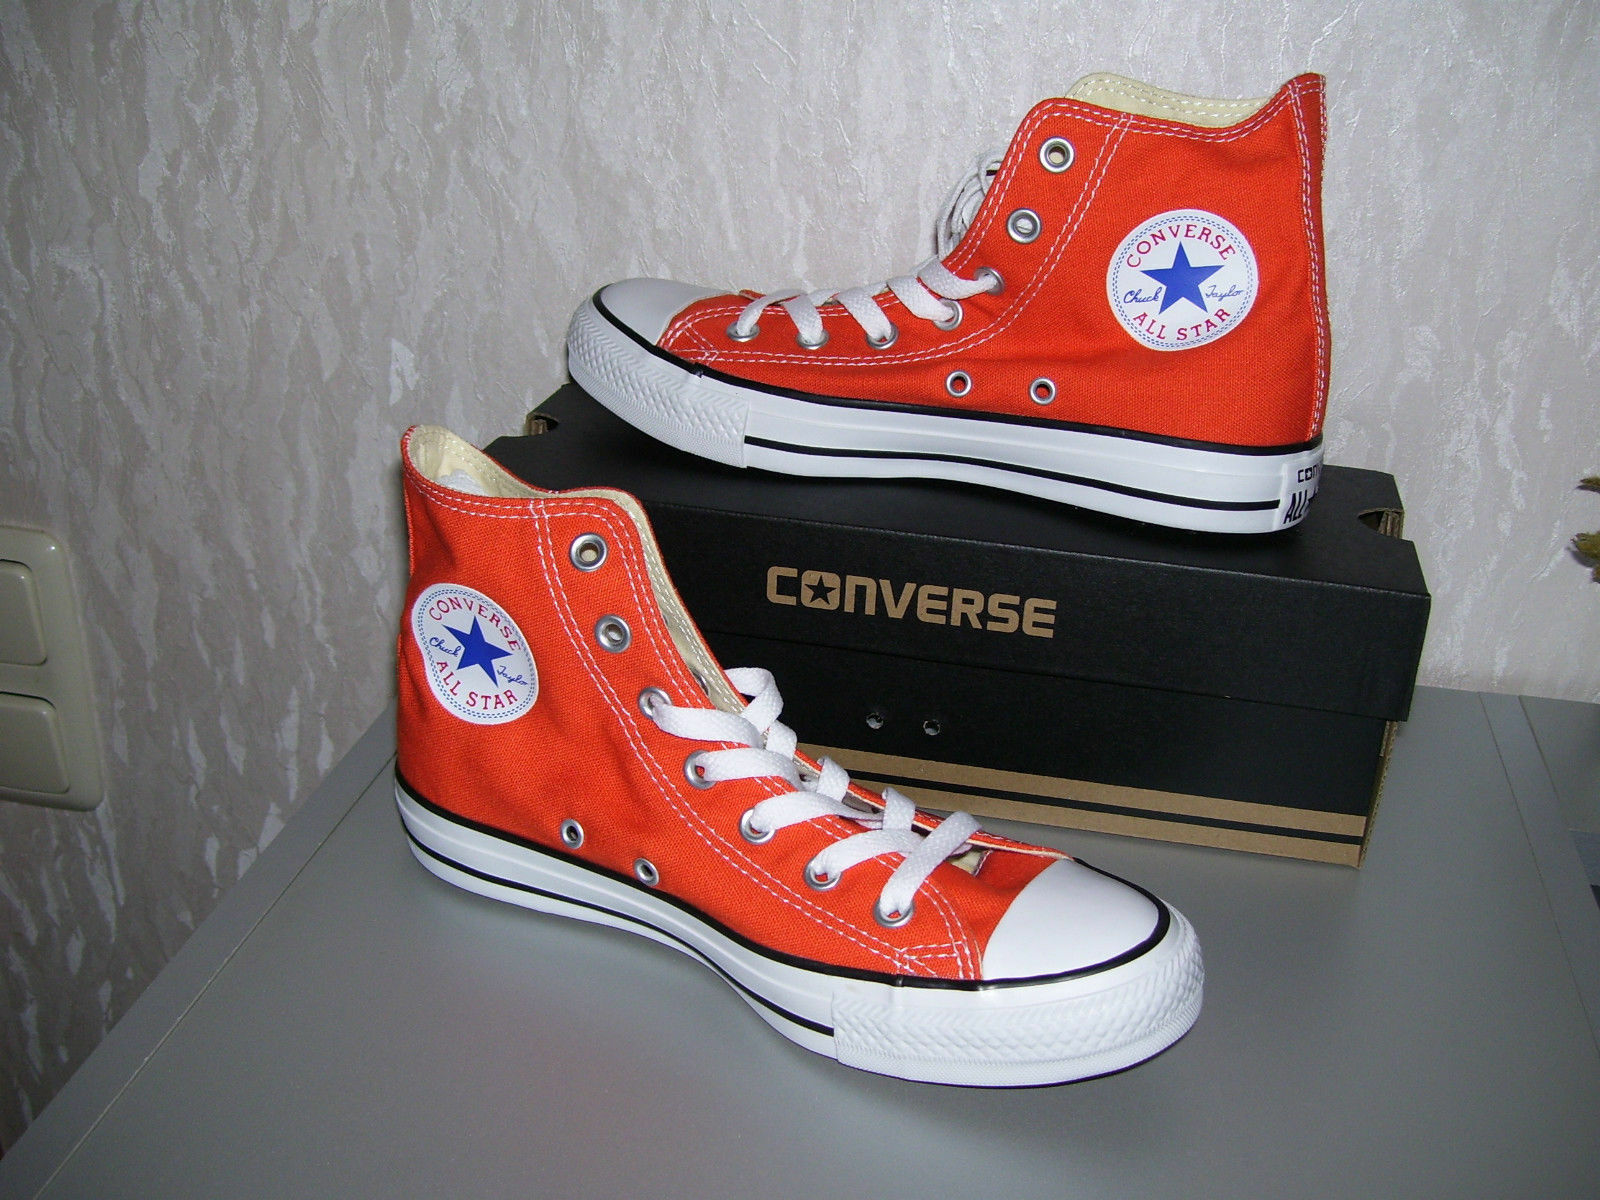 Converse All Star Chucks hi high Kult orange terracotta Grösse 36,5 oder 39 neu